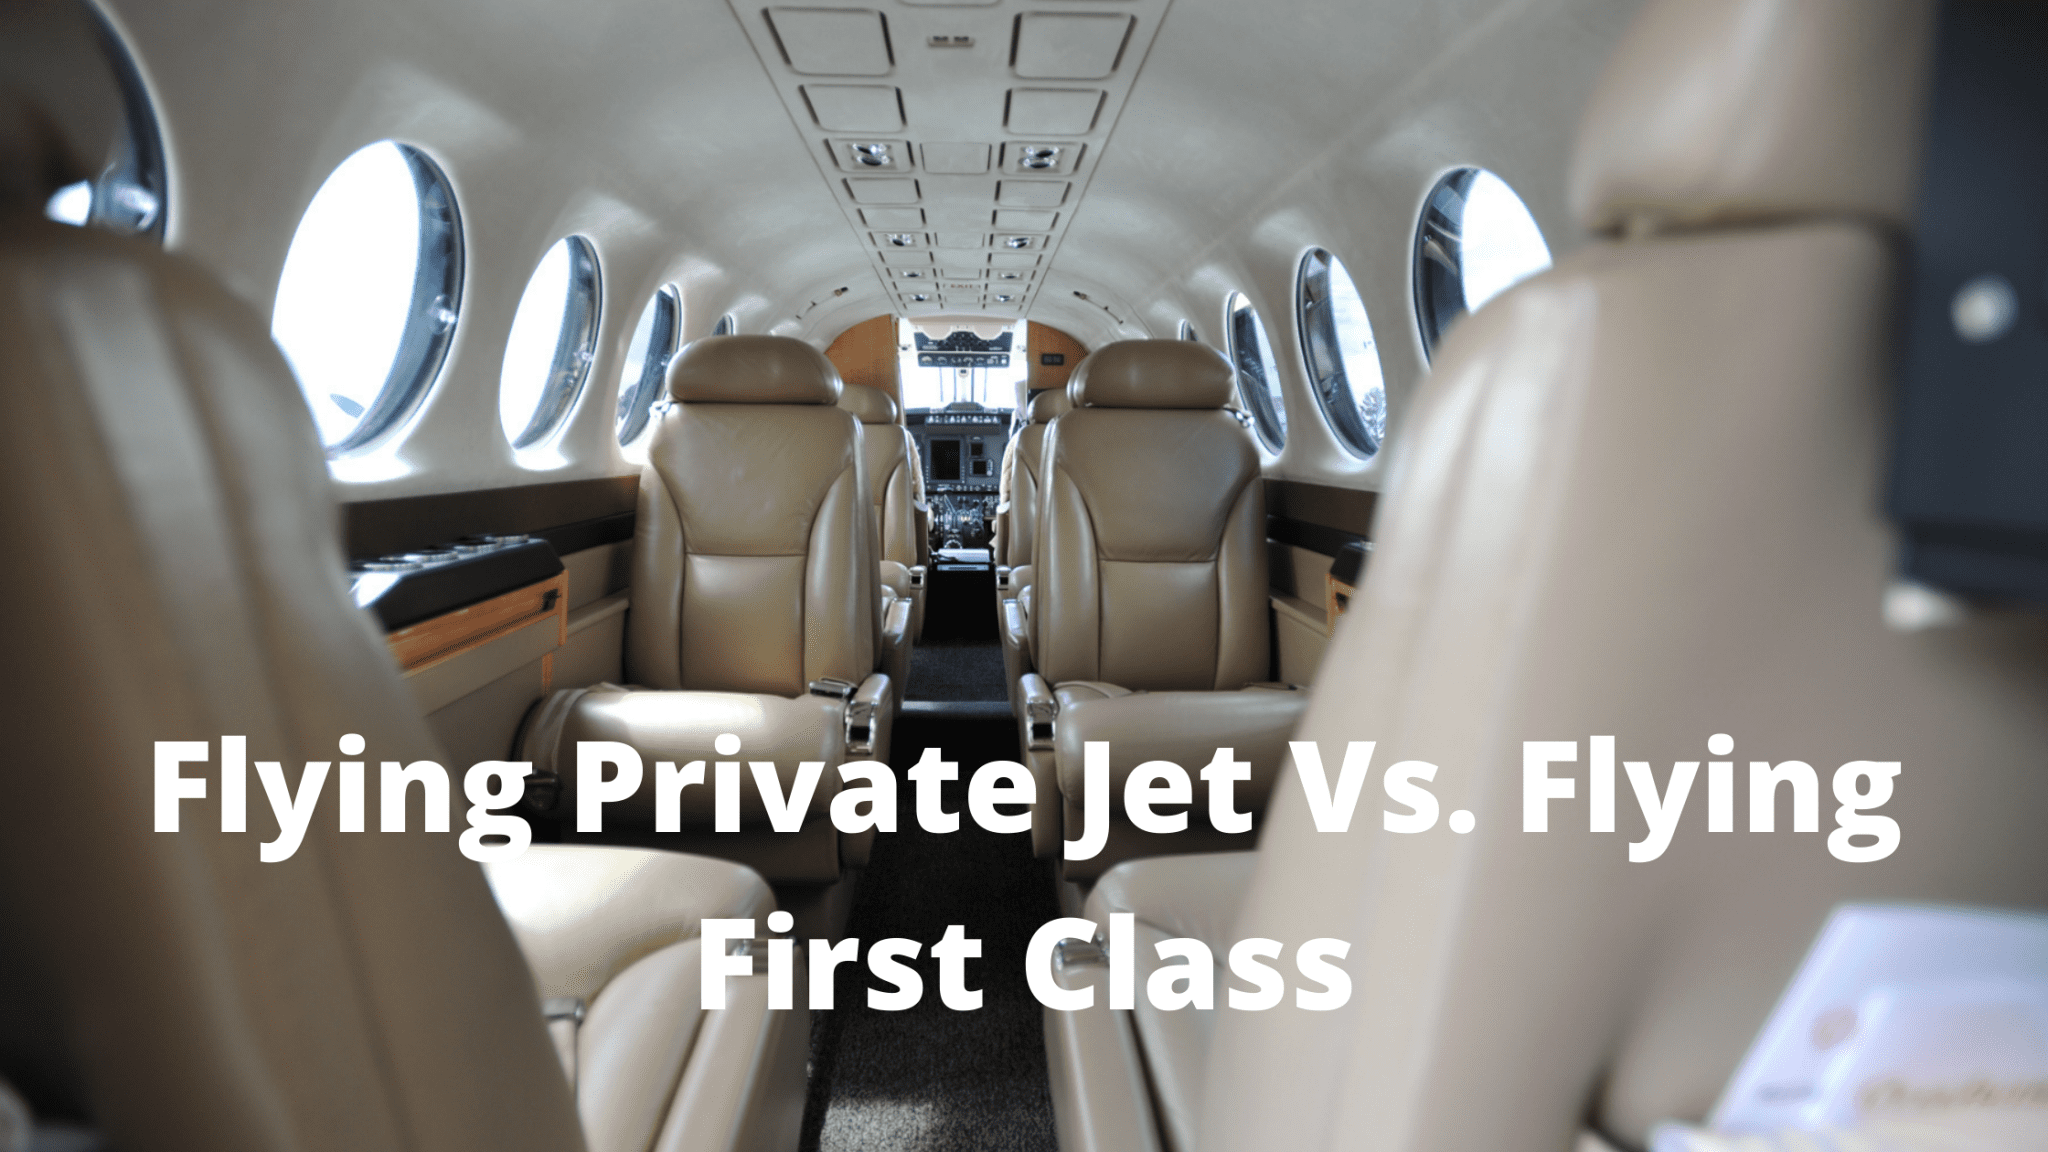 Flying Private Jet Vs. Flying First Class